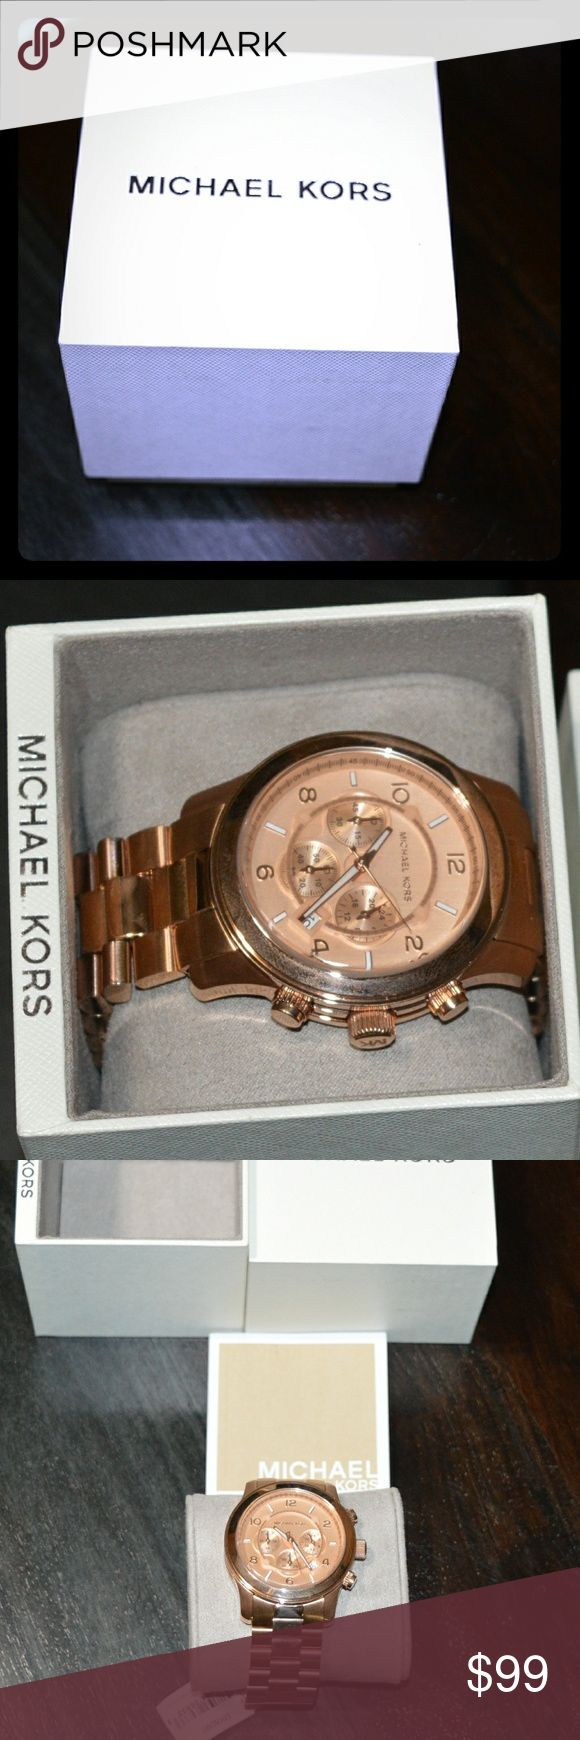 Michael Kors Rose Gold Oversized Watch #MK8096 NEW Brand new, never worn, still in the box!   Model # is MK8096 as depicted.  Please use this model number to find out more info online. Comes with instruction book and has not been sized yet. This means it will look big as you need to remove links to your specifications so it can still be customized to fit anyone. Seems to be popular with both males and females. Oversized is in! Michael Kors Accessories Watches